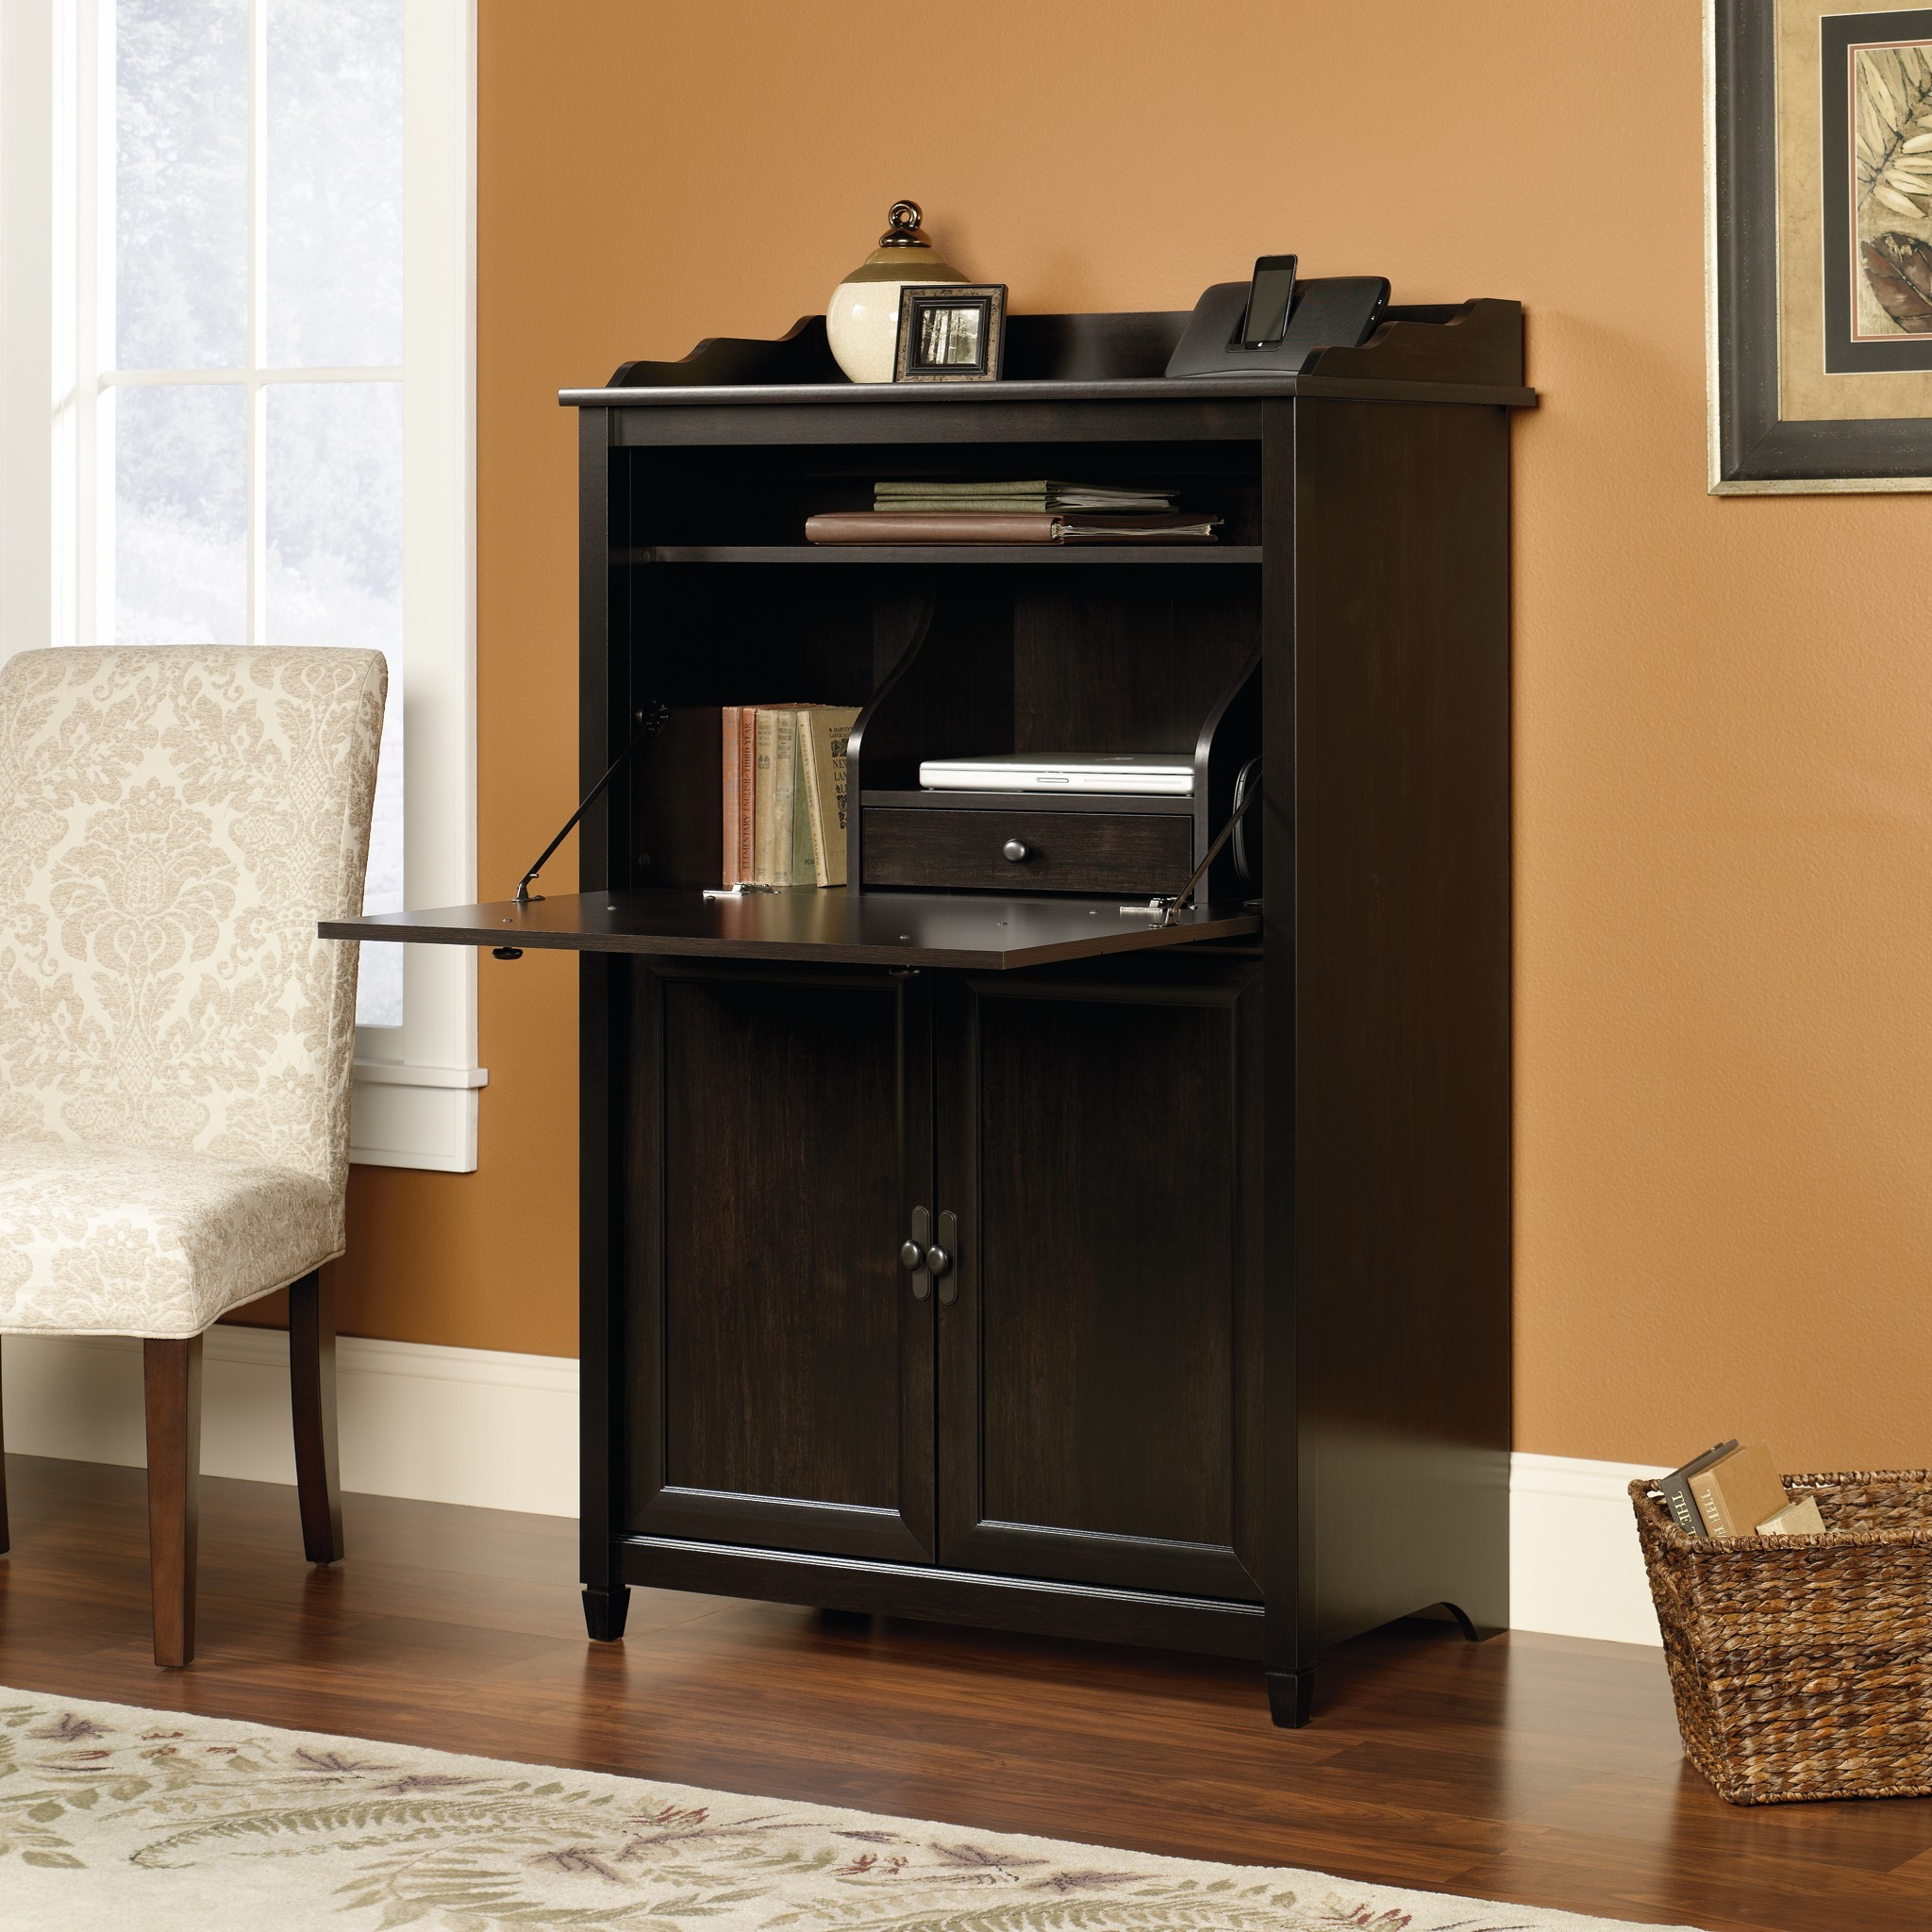 Computer Armoire – The Best Choice To Store Your Equipment (With Style)